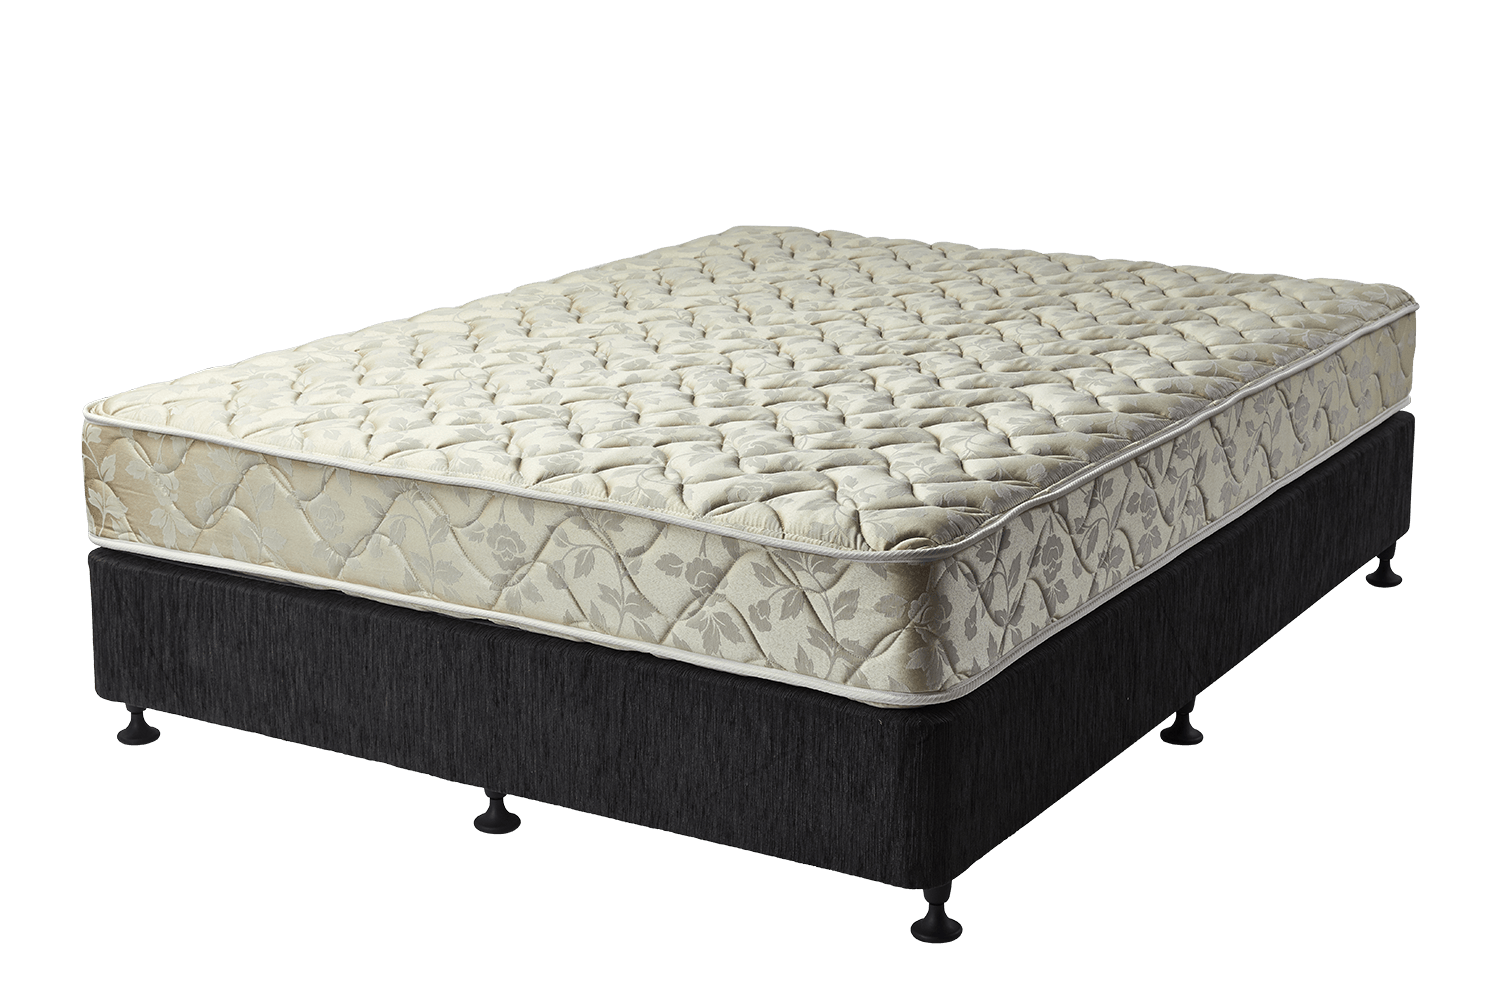 Why More Customers Are Heading Towards Queen Size Latex Mattress These Days